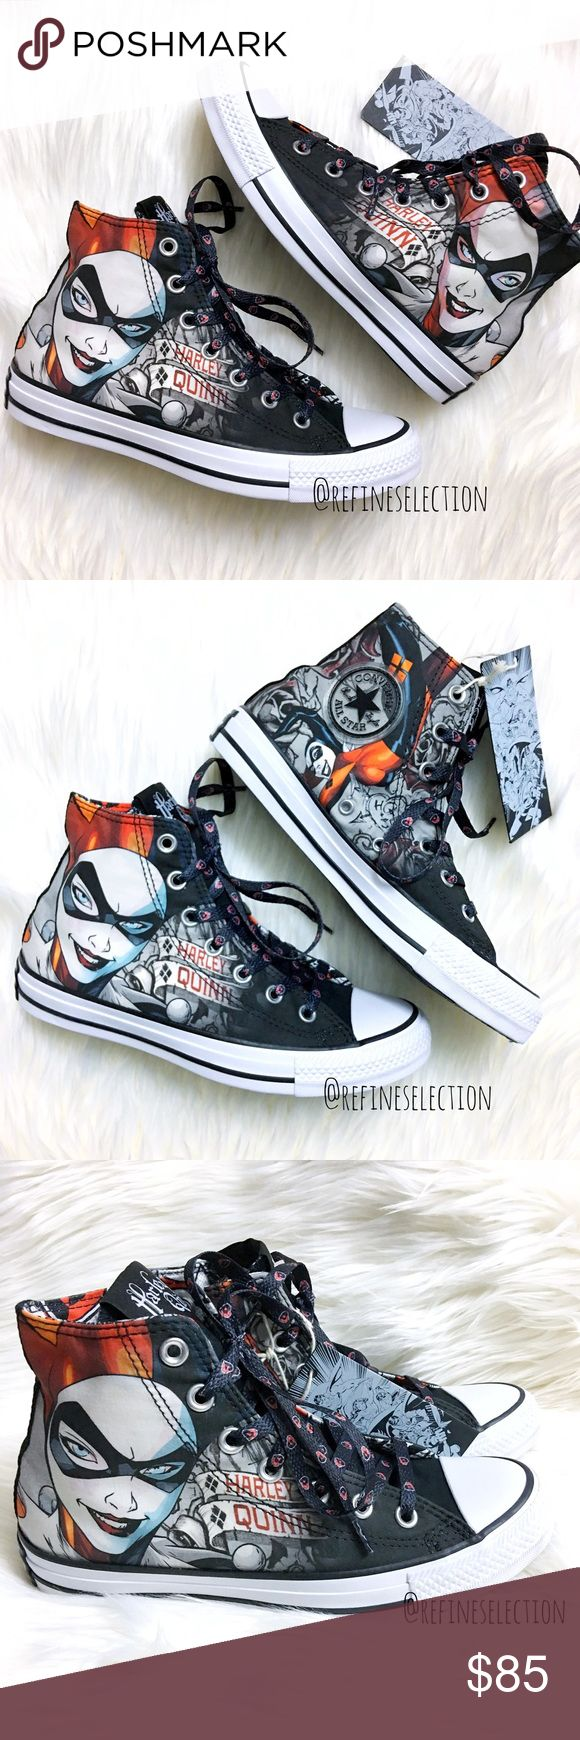 Converse Harley Quinn Chuck Taylor Hi Top Sneakers Brand new in box (without lid), Women's 6.5. These Converse DC Comics Harley Quinn Chuck Taylor All Stars Hi Top Sneakers are a must have for any fan! Has an amazing graphic of Harley Quinn all over, with limited edition black shoelaces made just for these sneakers! Also includes a pair of white shoelaces to switch things up. Harley Quinn is also displayed on the tongue. A fun & quirky Quinn print is inside the sneaker as well. Must have for…